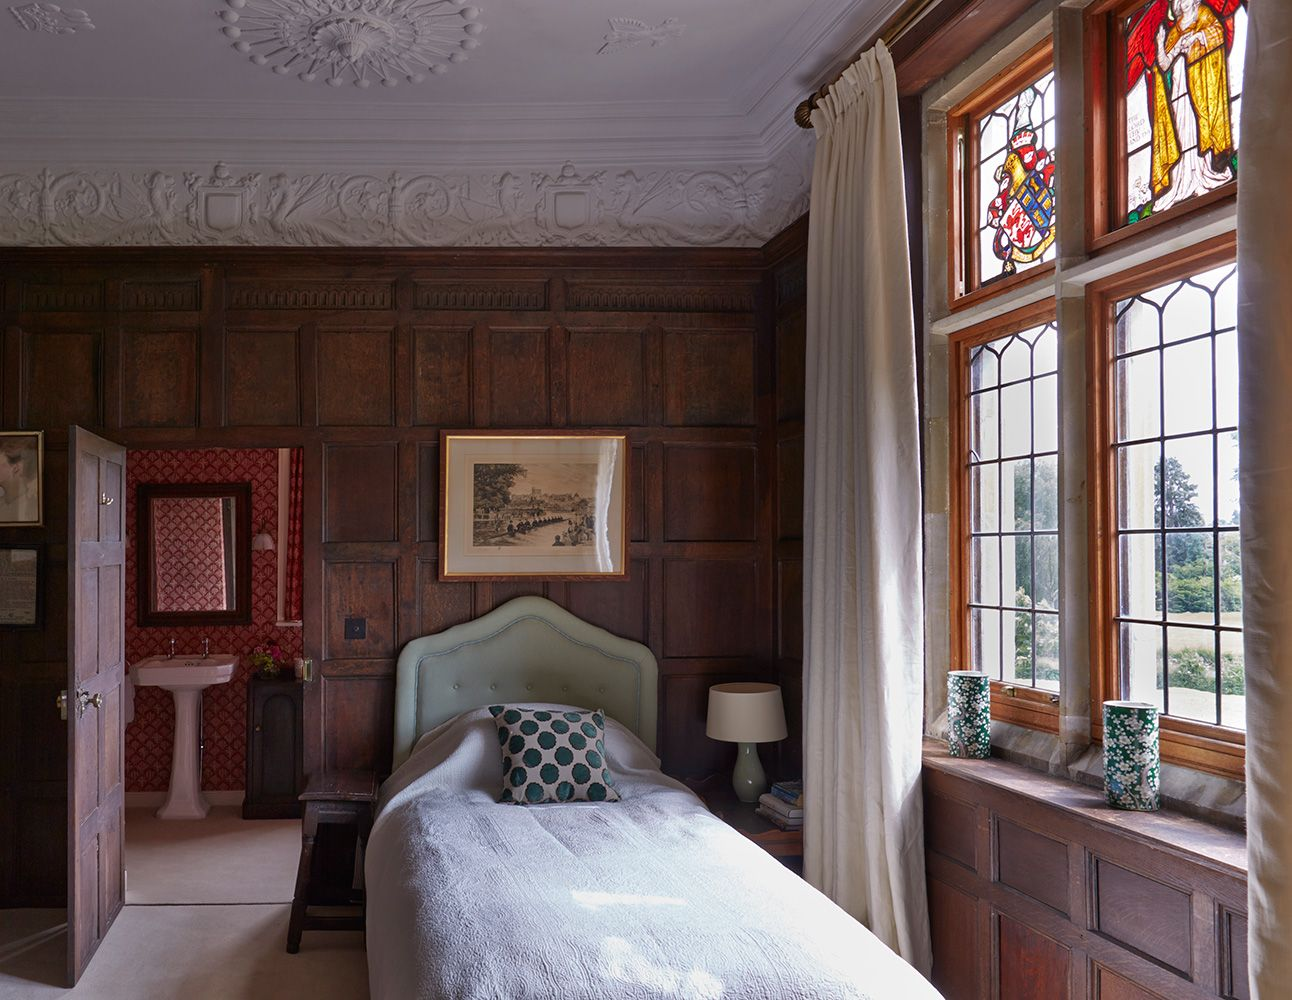 Principal bedroom in an historic home with an interior inspired by - Interior Design Country Houses Madresfield Court Todhunter Earletodhunter Earle